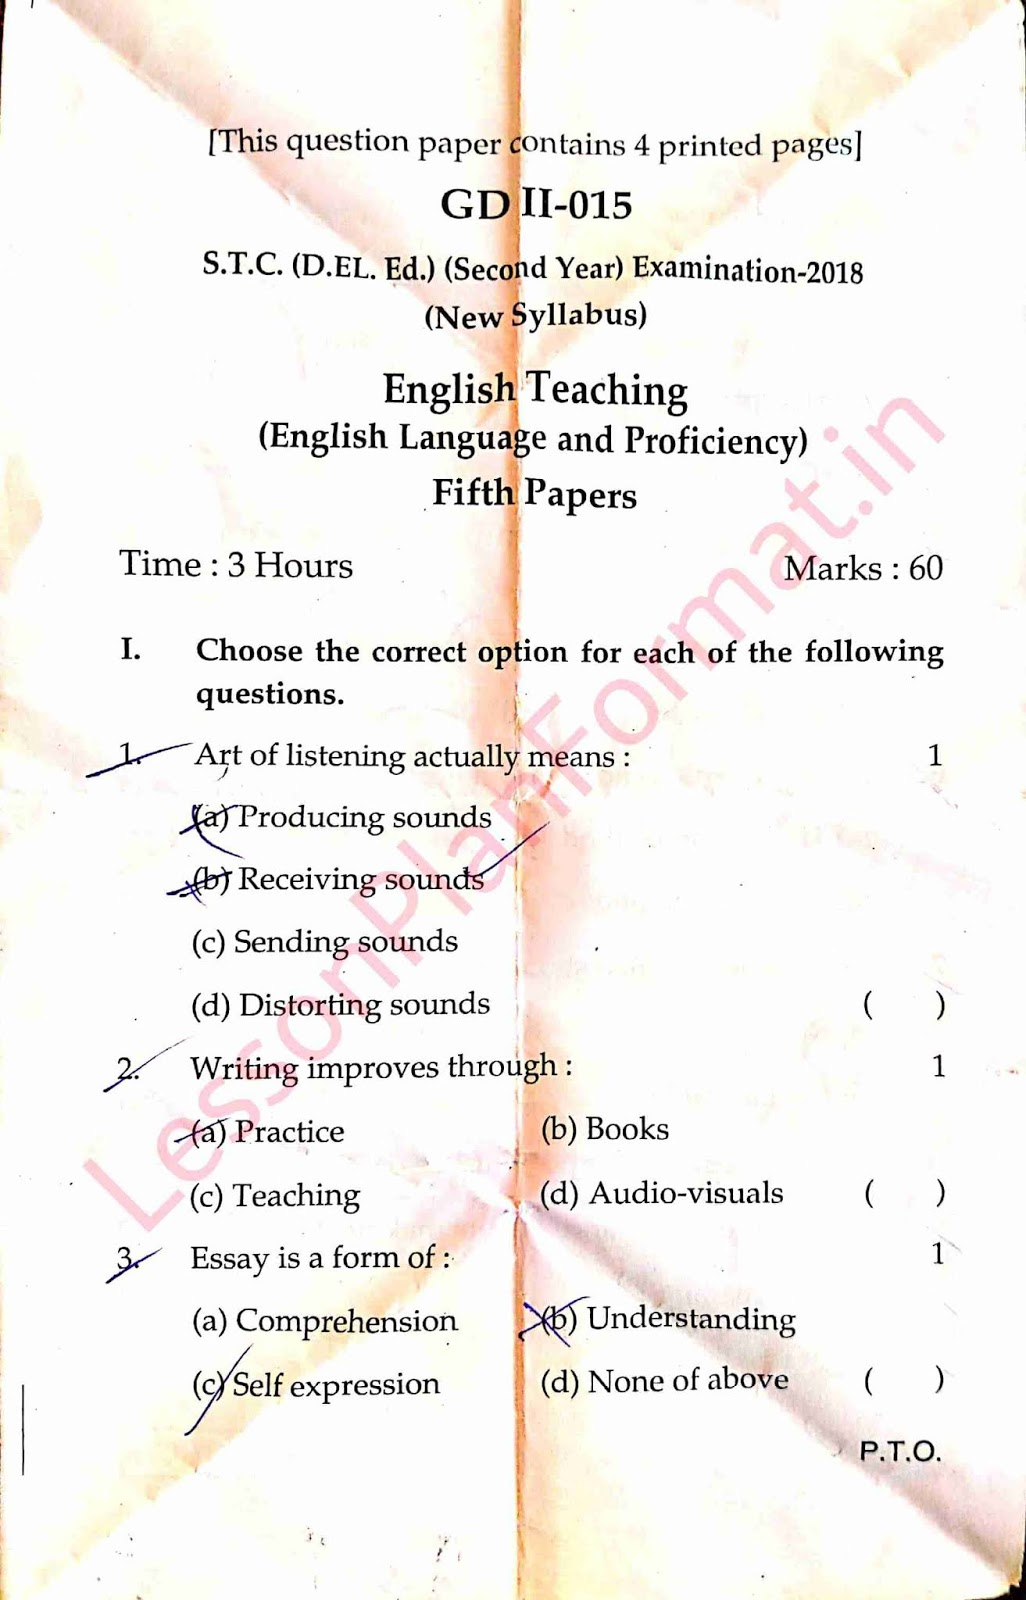 Deled Second Year 5th Old Paper 2018